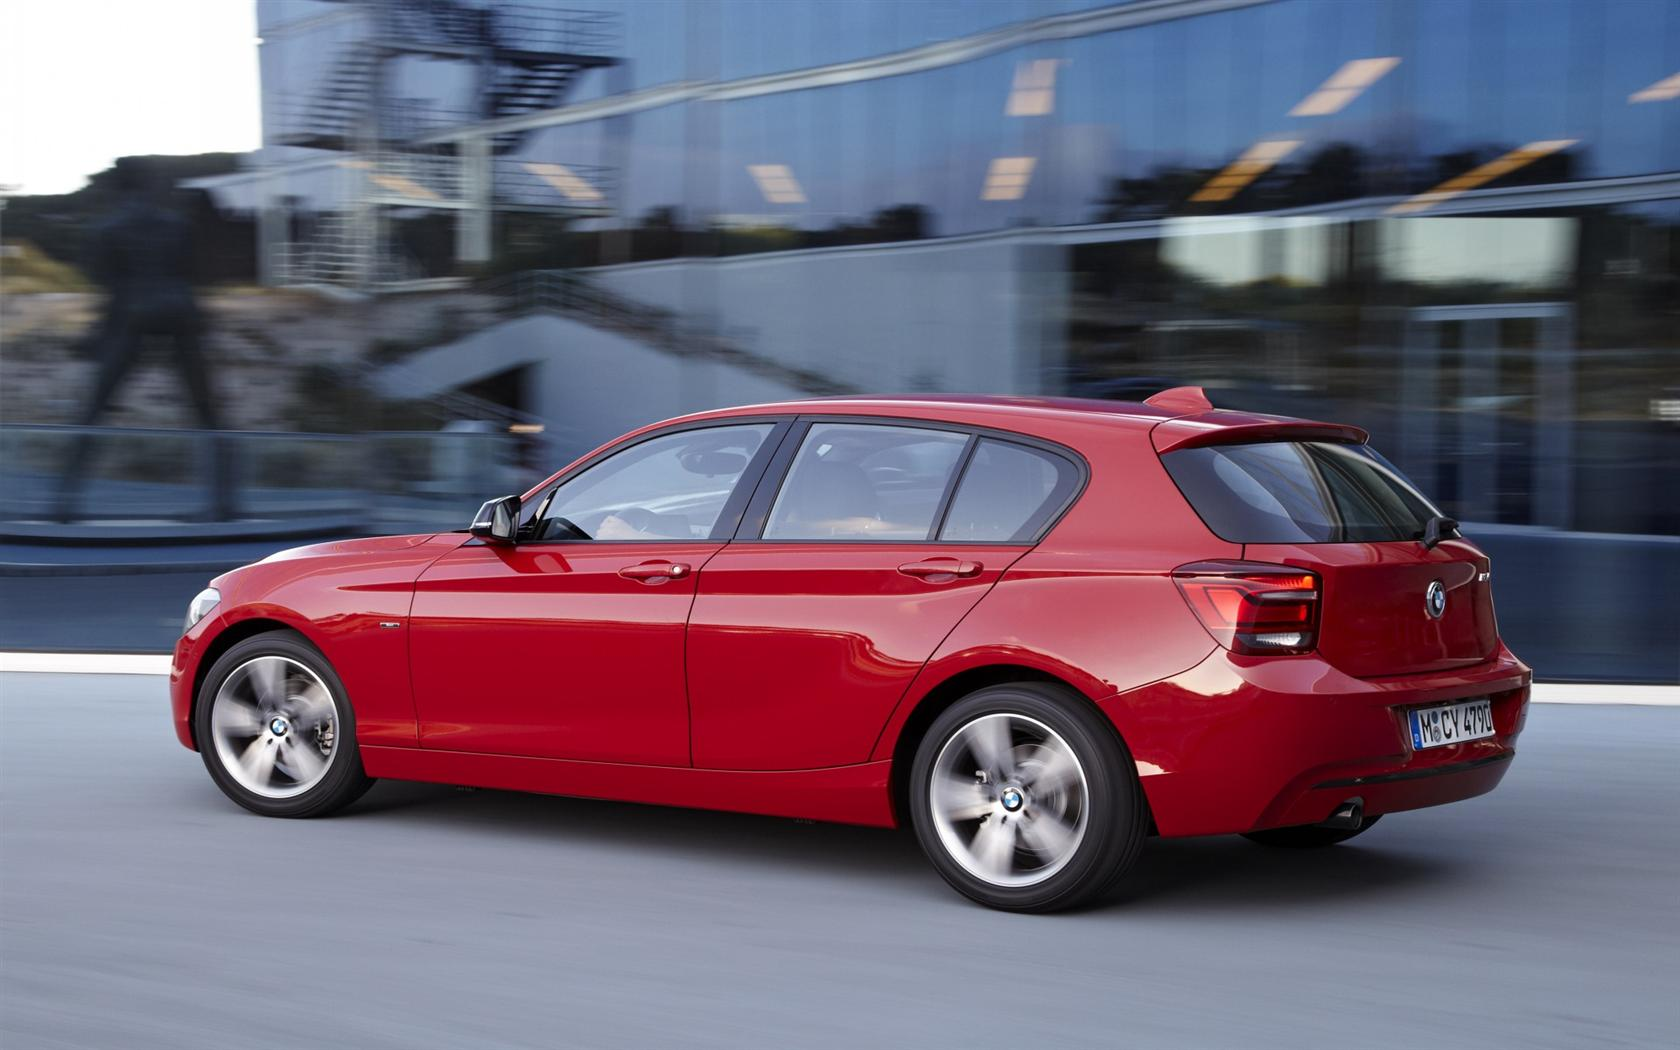 2012 BMW 1 Series Image